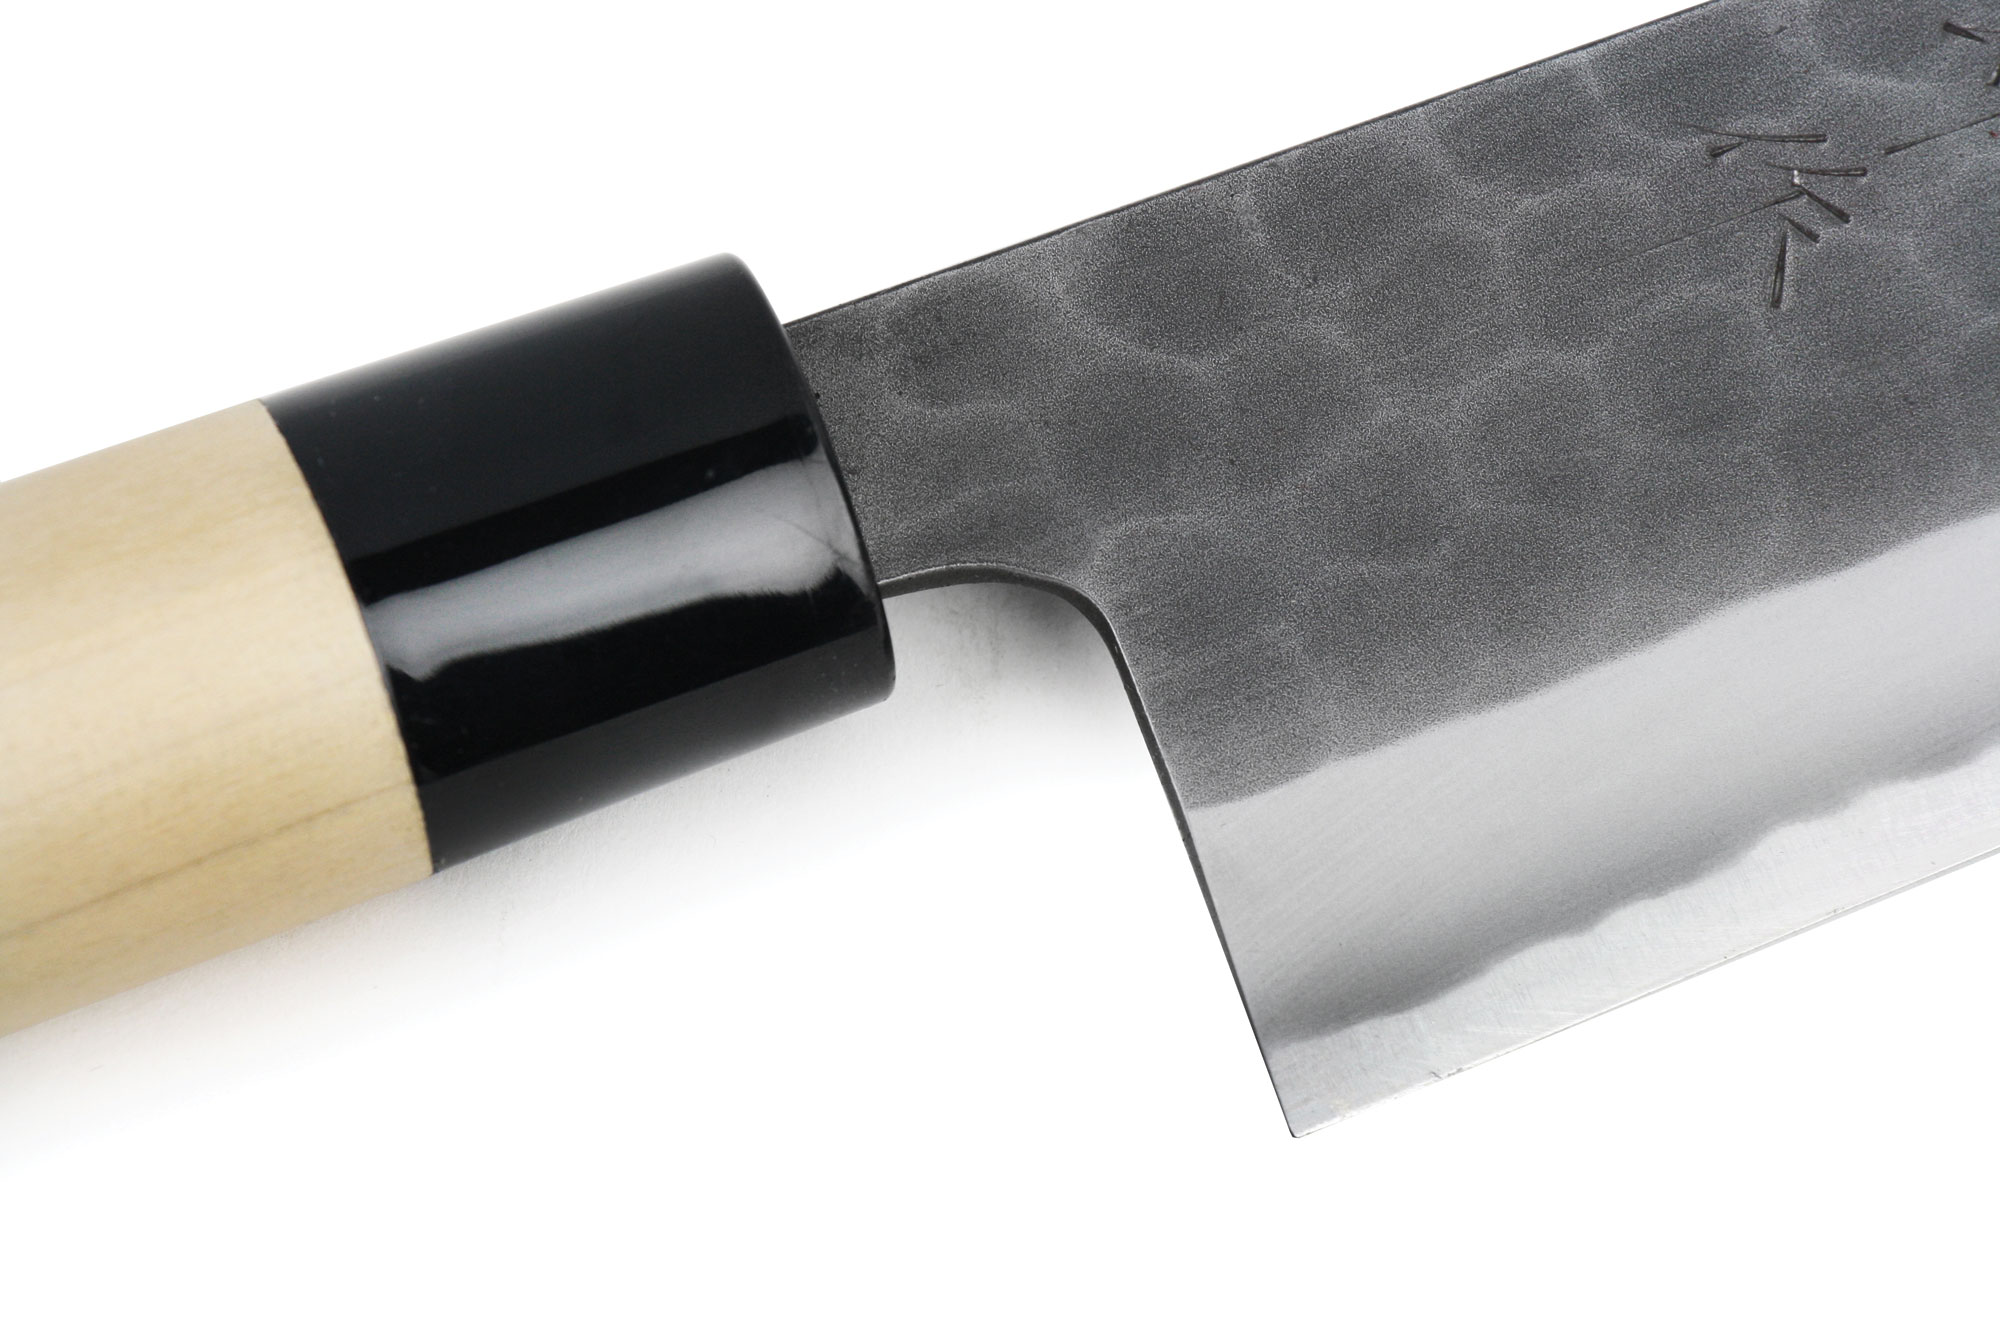 Tojiro Hammered Black Carbon Steel Chef\'s Knife, 9.5-inch | Cutlery ...